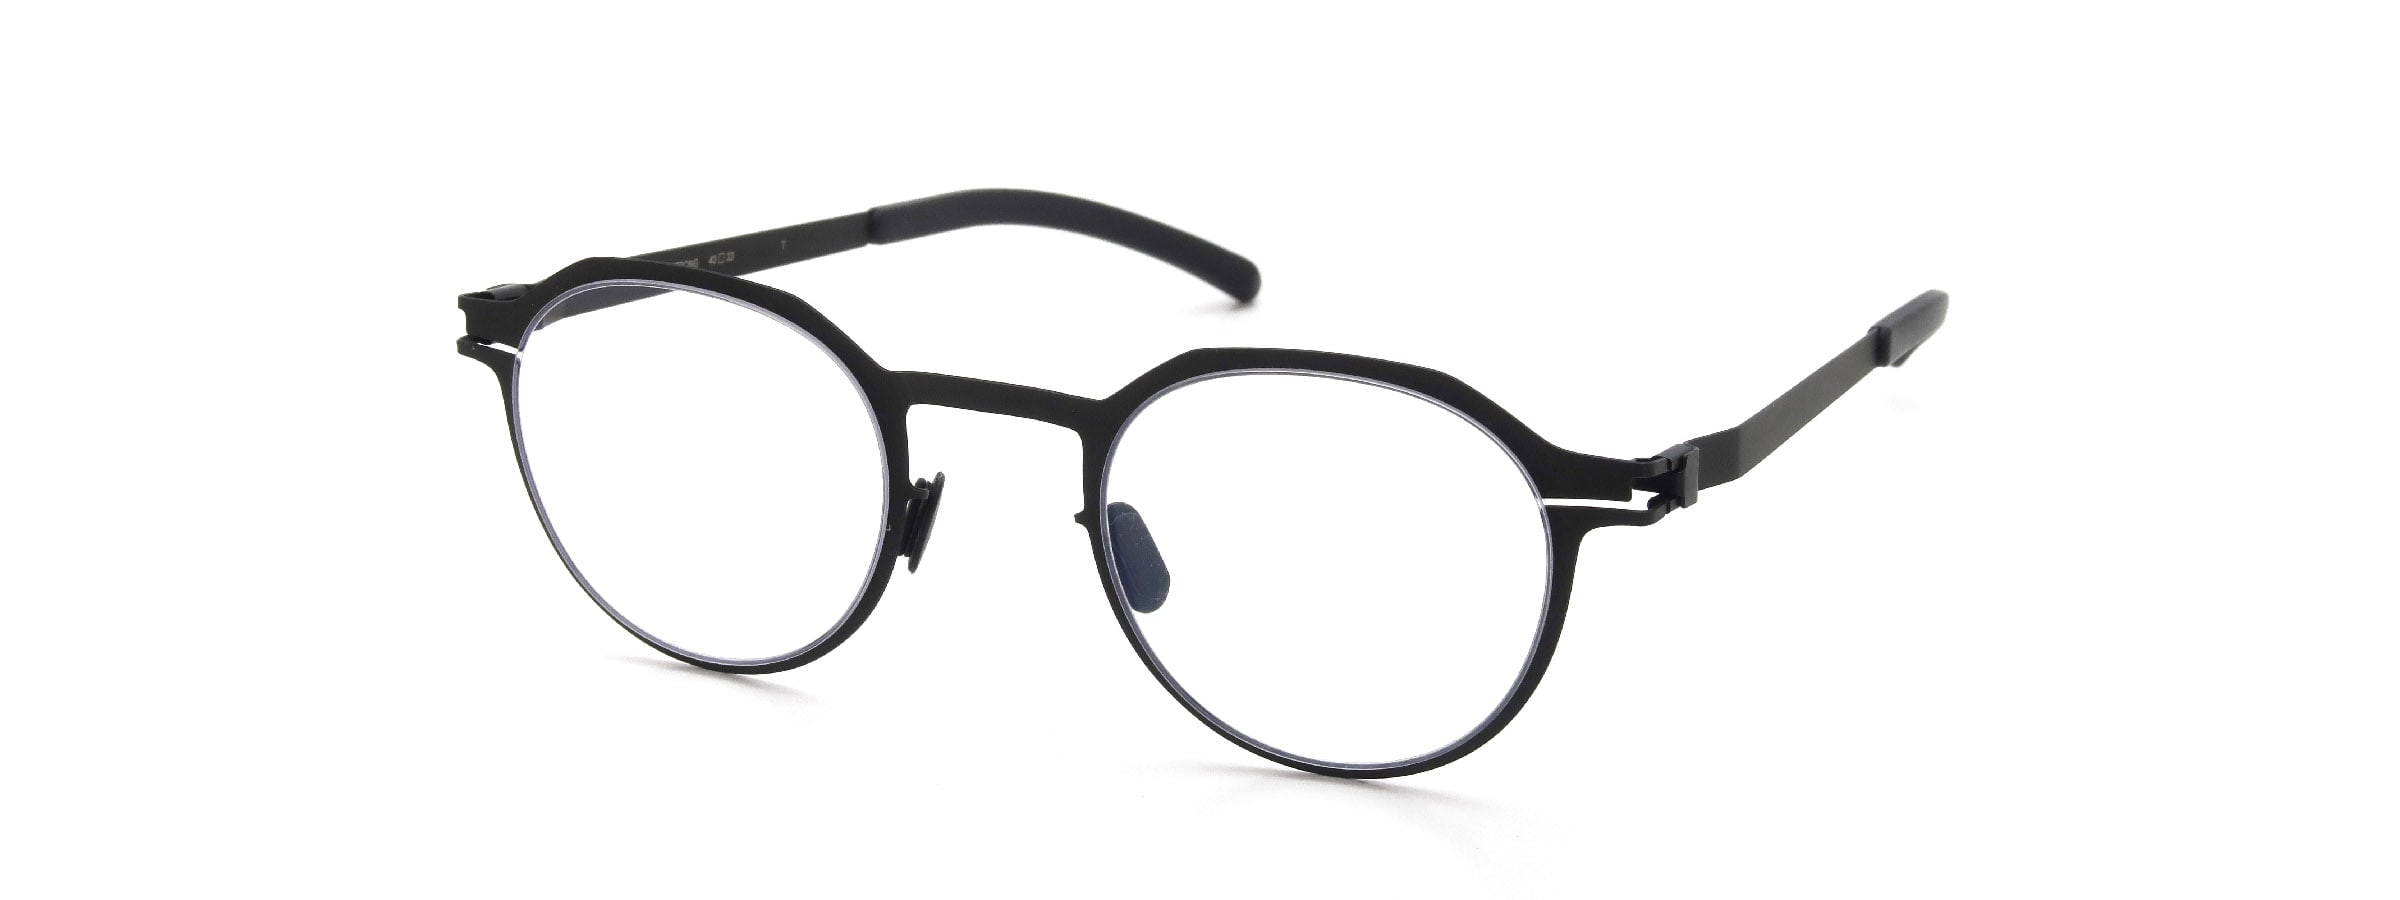 MYKITA [DECADES] ARMSTRONG